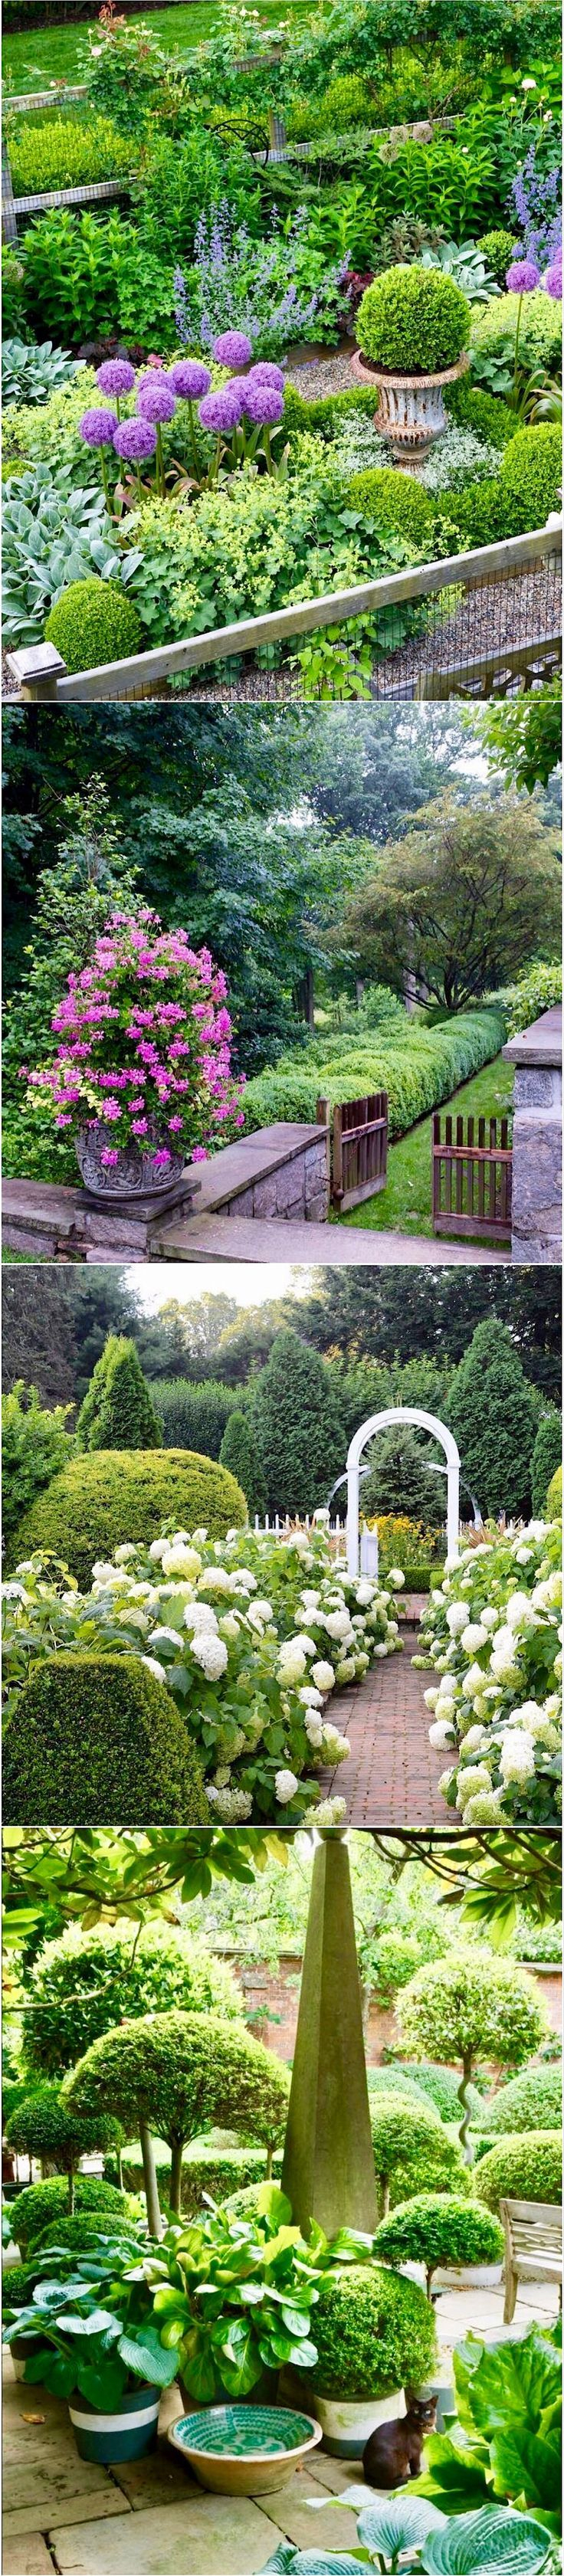 Gardenscapes and landscaping ideas